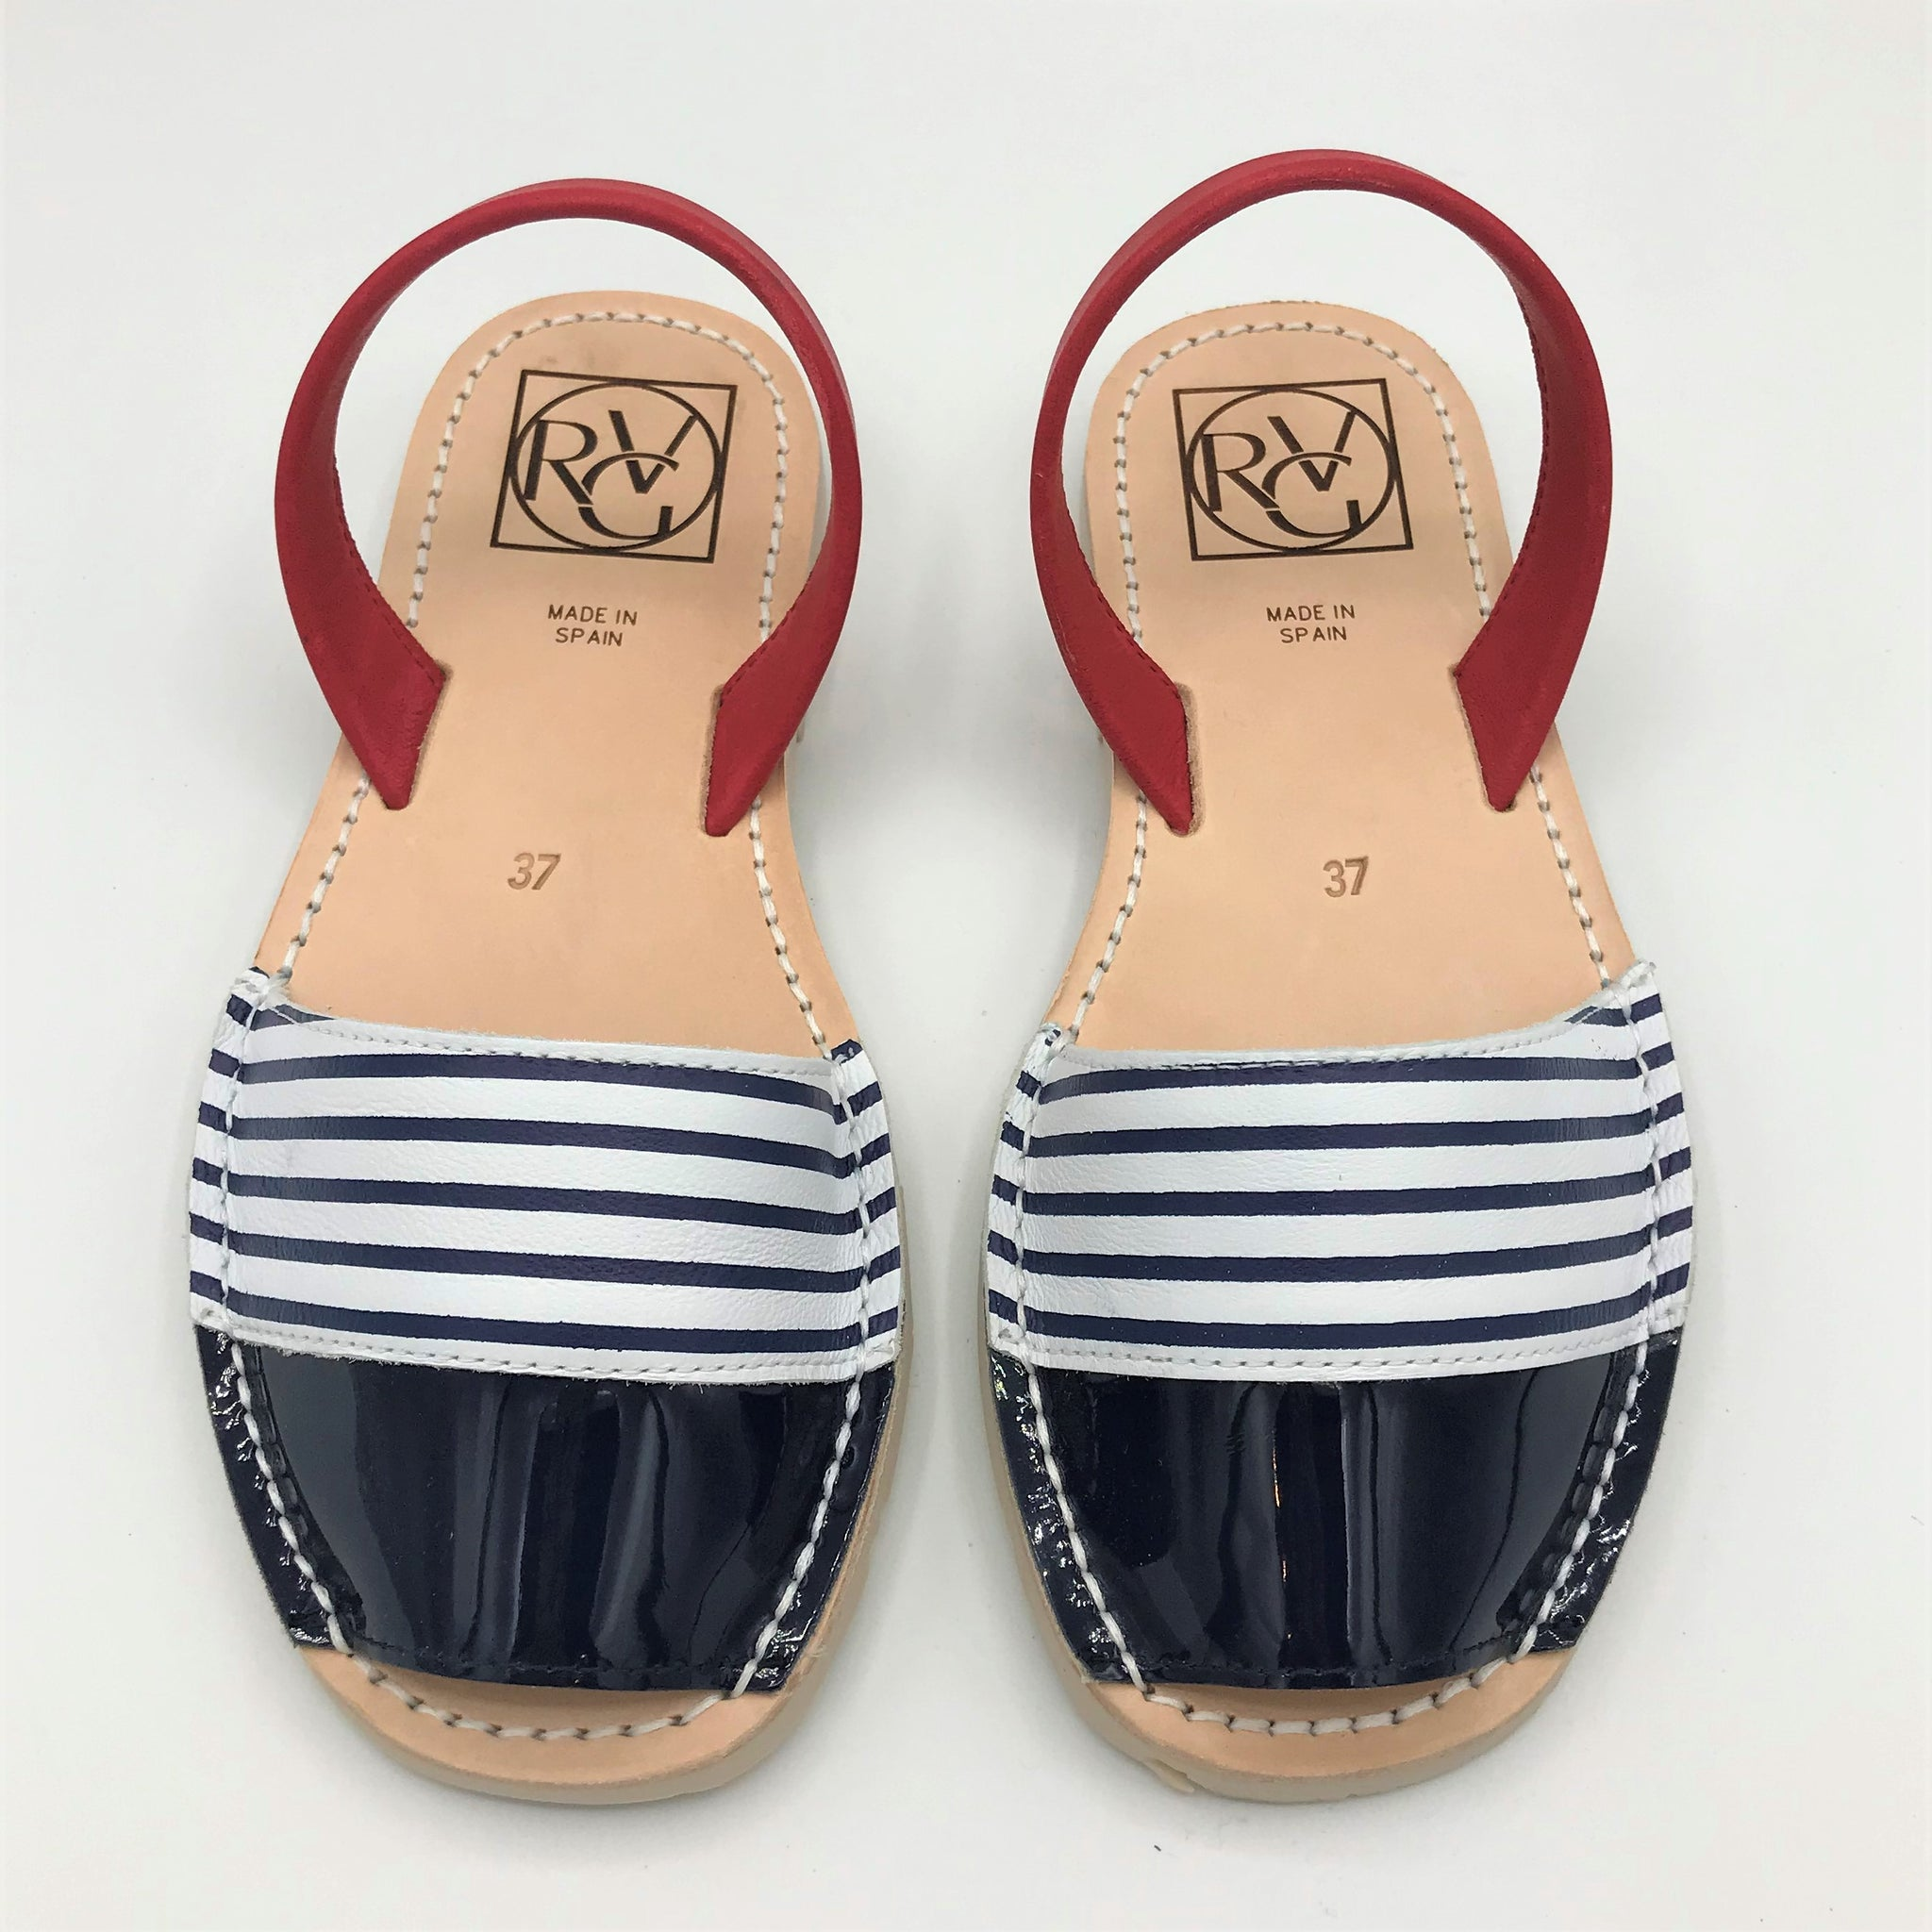 Striped Blue and Red Leather Sandal from RGV Styled